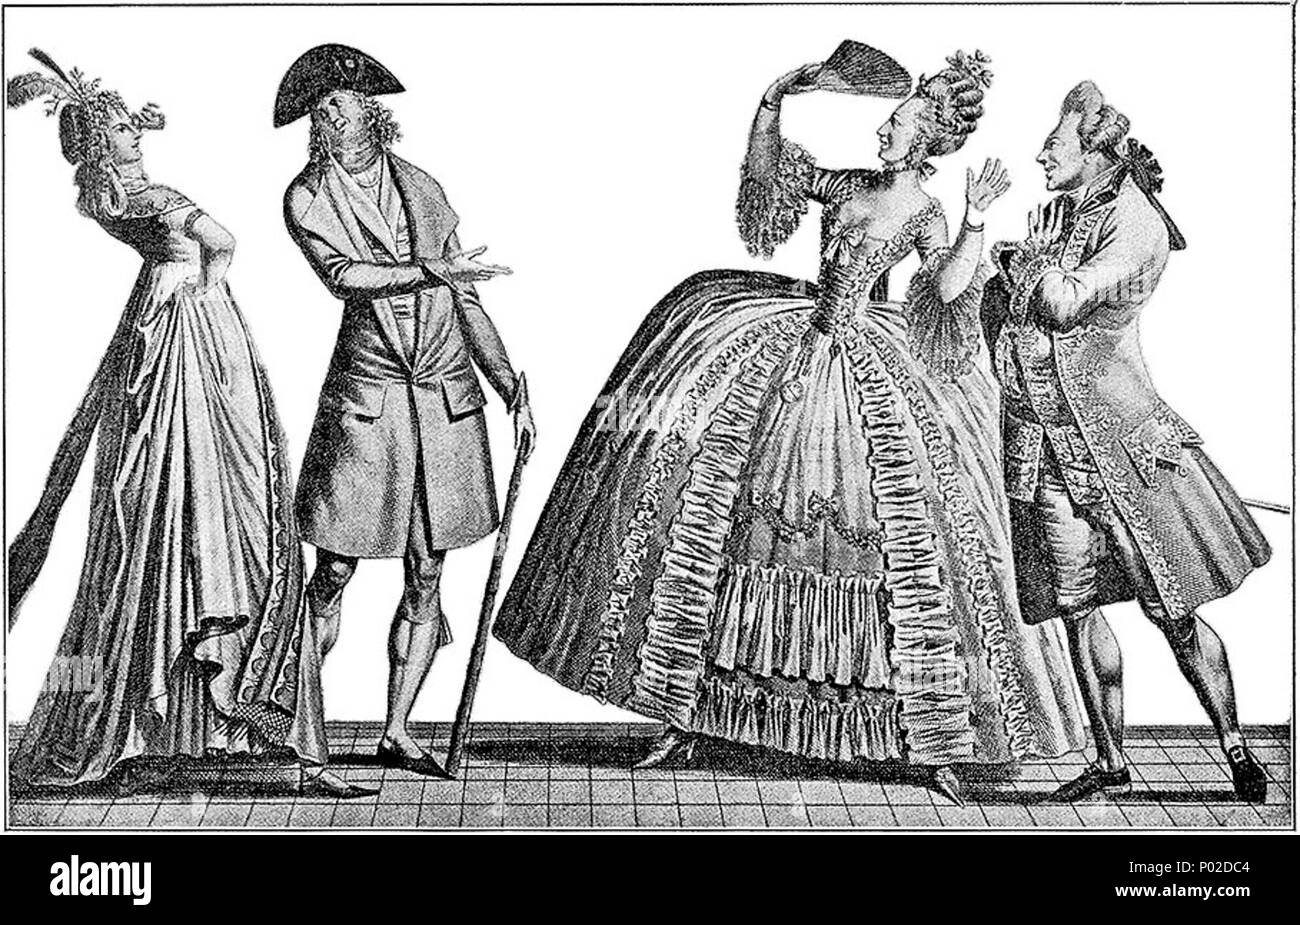 . A 1793 contrast between French fashions of 1793 and ca. 1778, showing the large style changes which had occurred in just 15 years. The couple on the left, dressed in bleeding-edge up-to-the moment styles of 1793, is saying 'AH! QUELLE ANTIQUITÉ!!!'; while the couple on the right, dressed in formal court styles of ca. 1778, is exclaiming 'OH! QUELLE FOLLIE QUE LA NOUVEAUTÉ.....' (For a contemporary 1778 color depiction of an outfit similar to what the woman on the right is wearing, see Image:1778-jeune-dame-de-qualite-en-grande-robe.jpg.) From Vernet's 'Incroyables et Merveilleuses' series, 1 - Stock Image